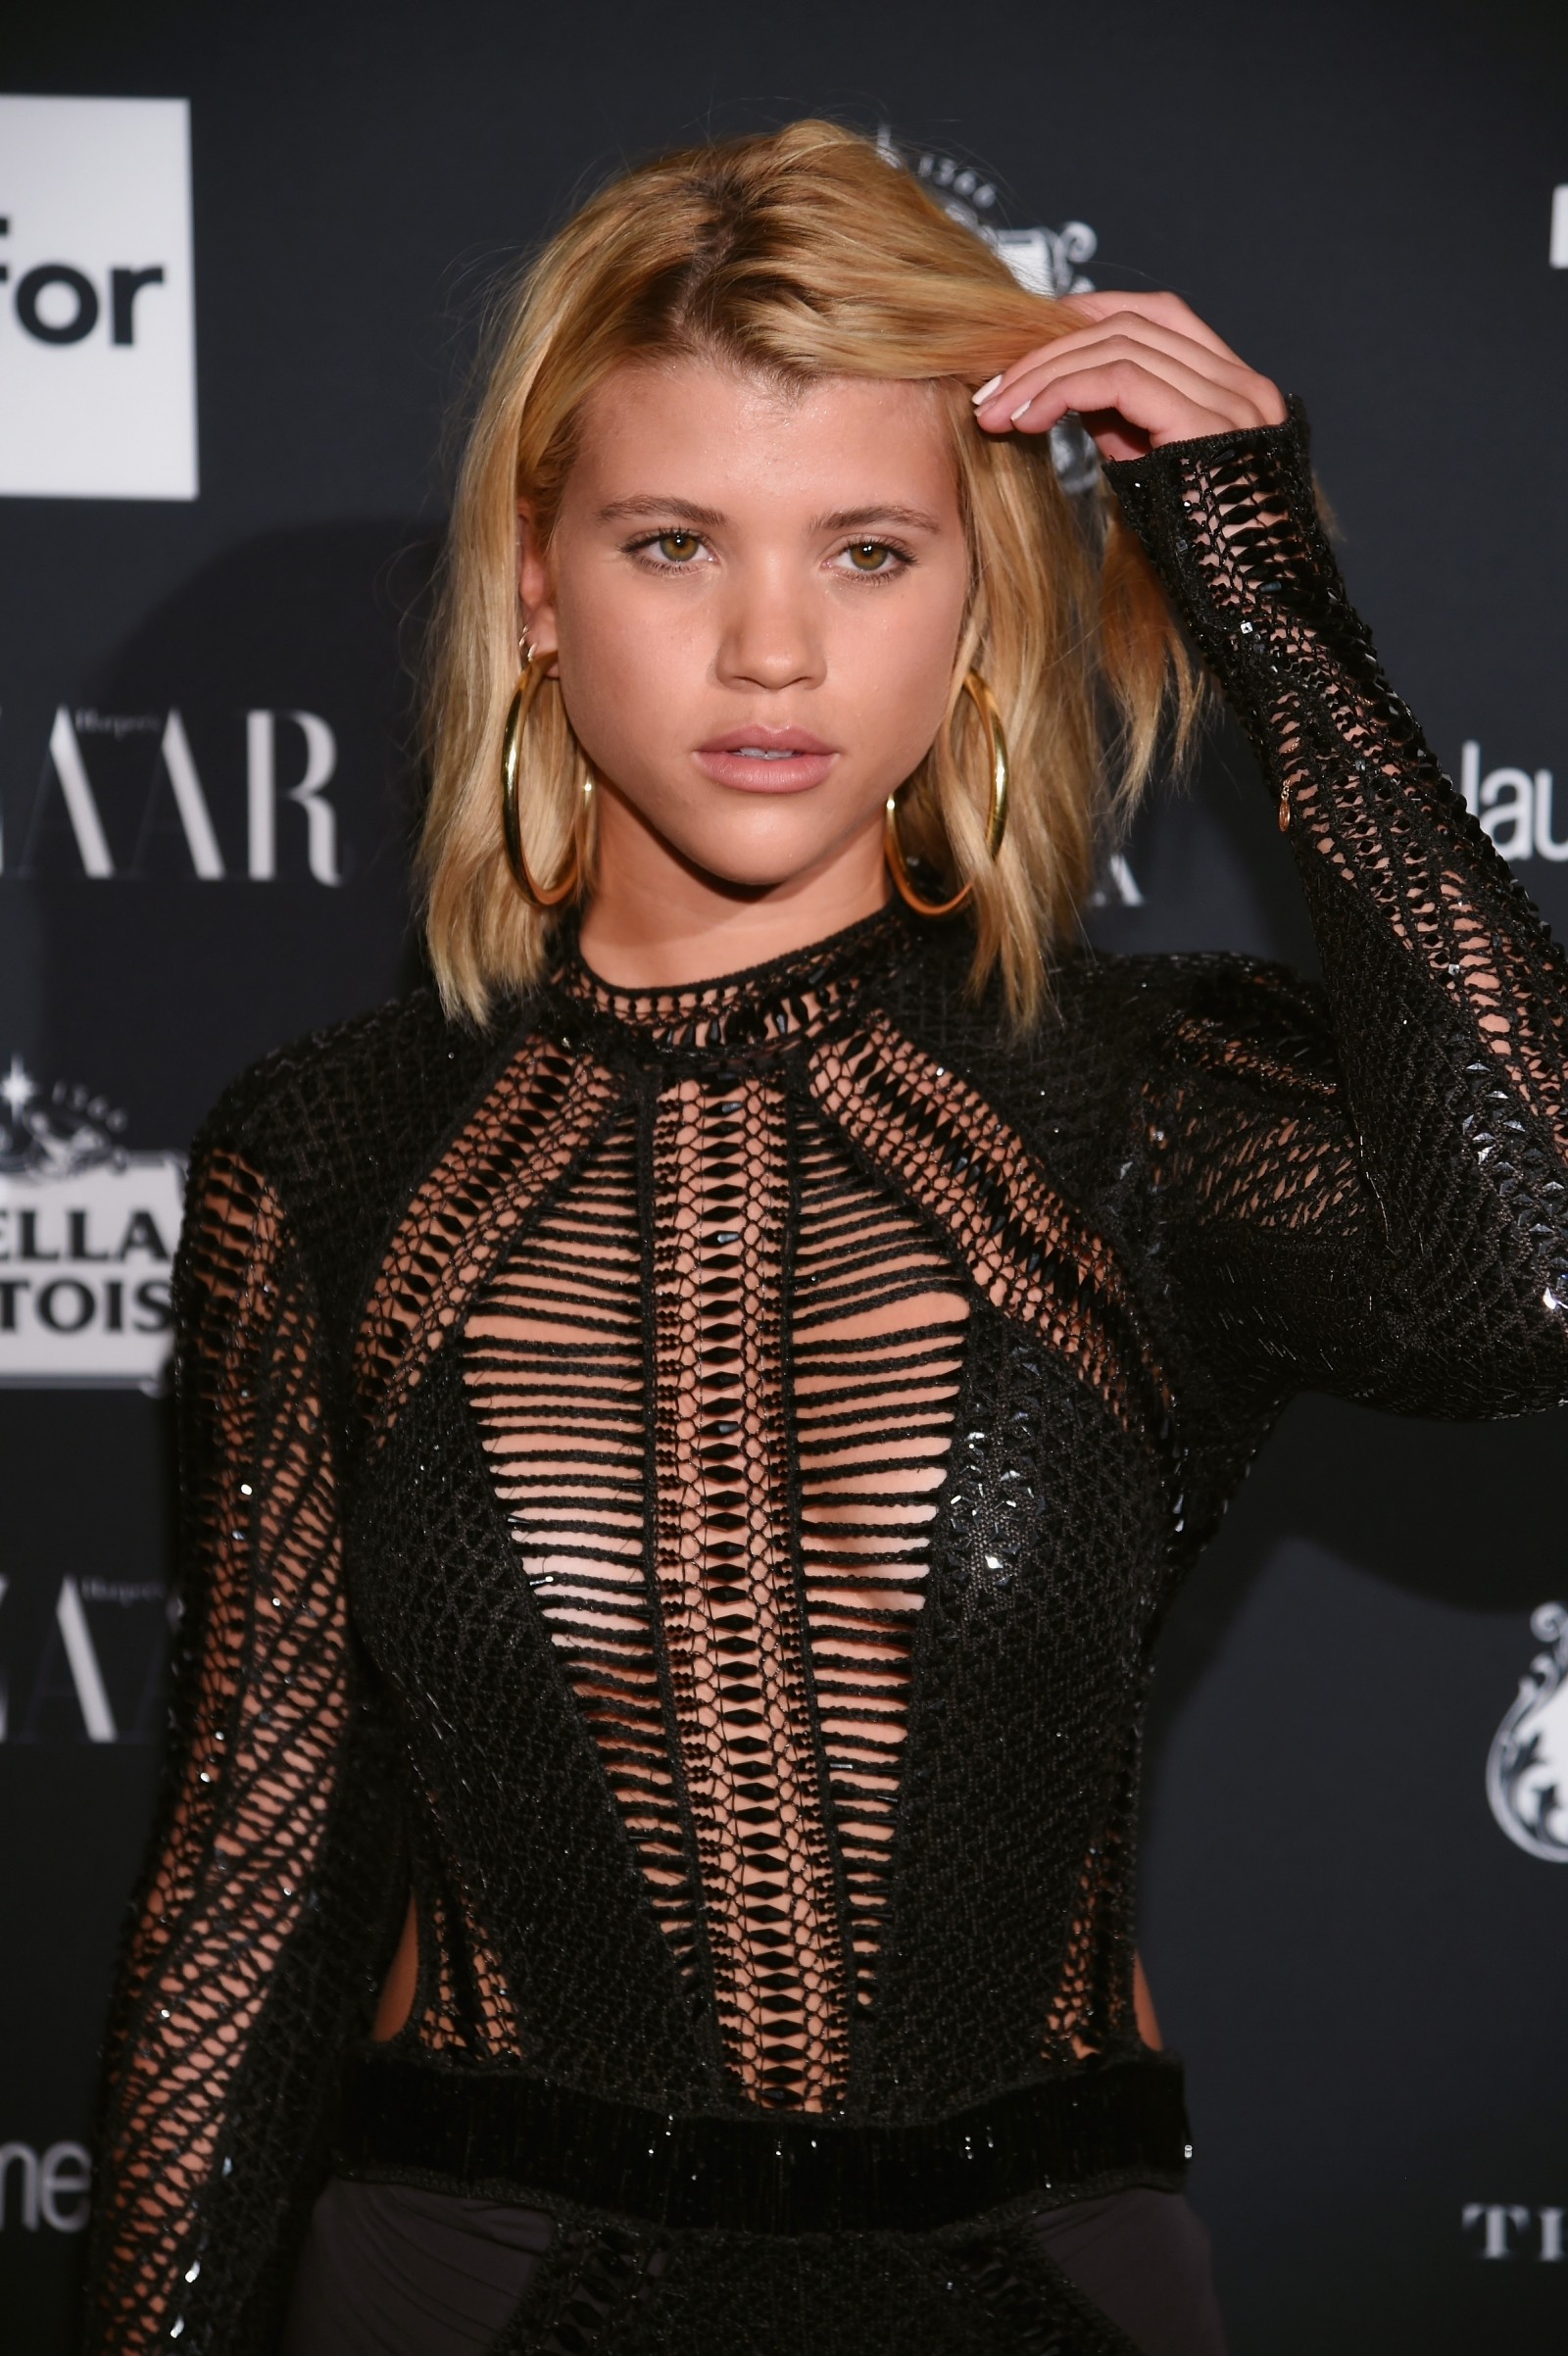 Ass Young Sofia Richie naked photo 2017